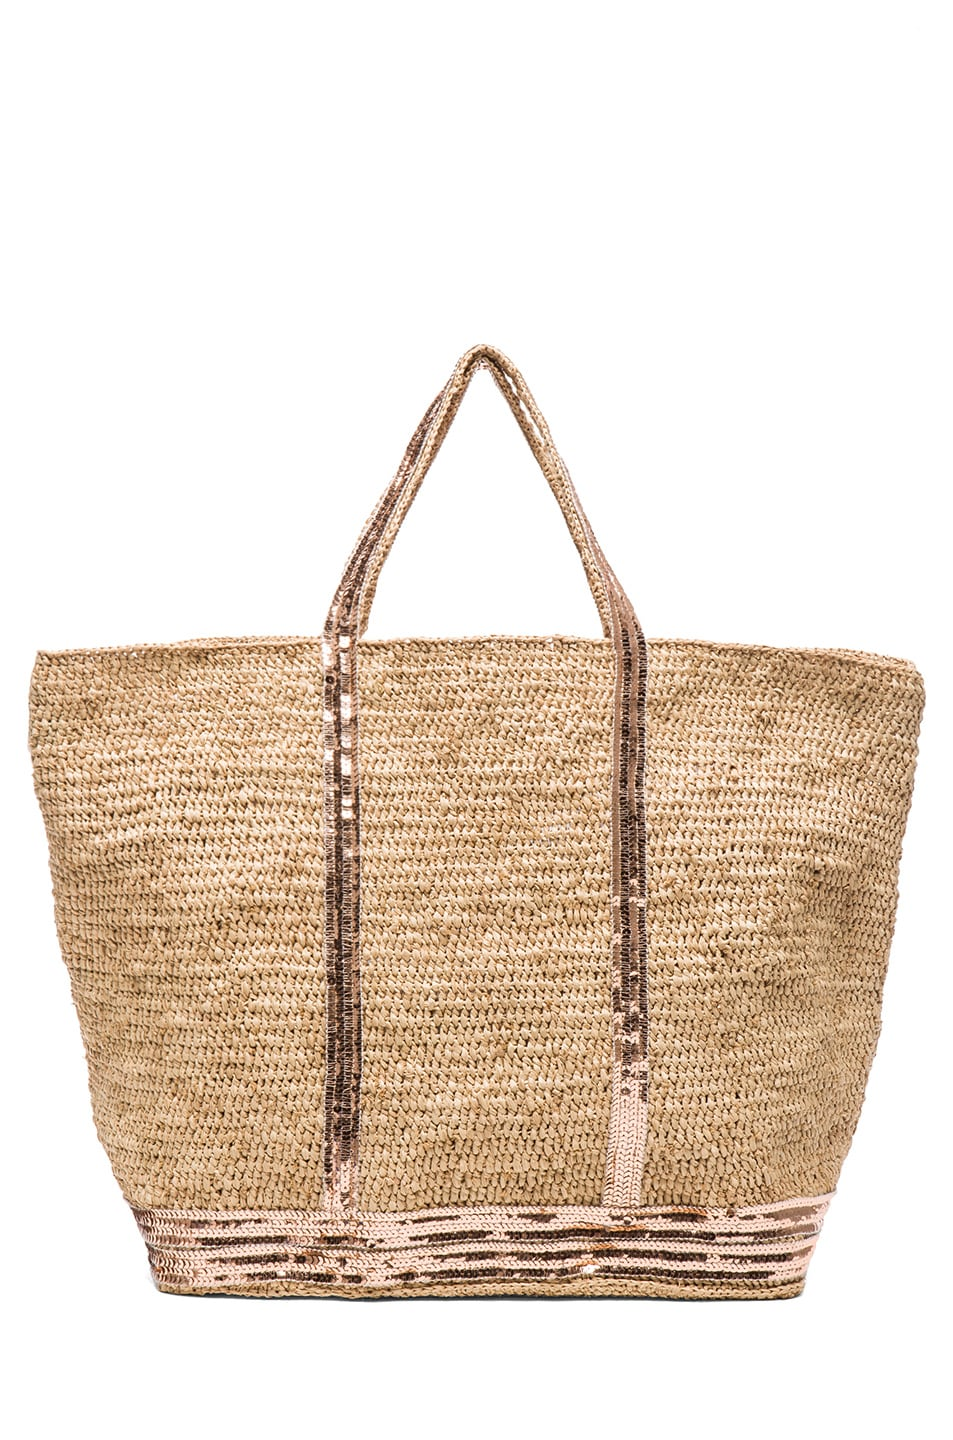 Image 2 of Vanessa Bruno Raffia Tote in Naturel